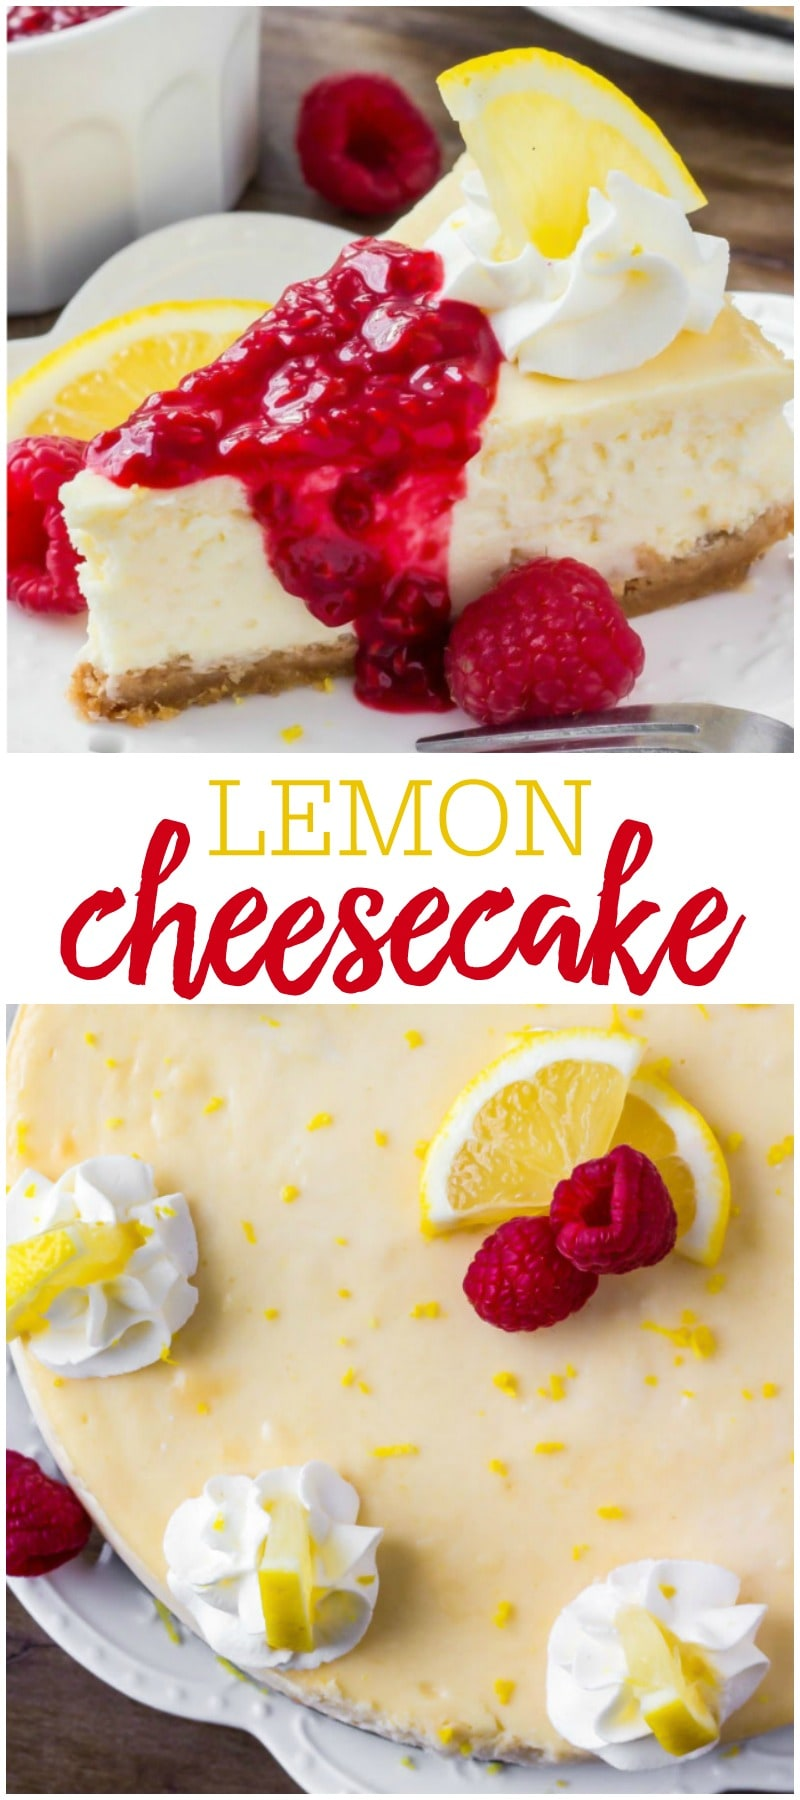 Best Lemon Cheesecake with Raspberry sauce